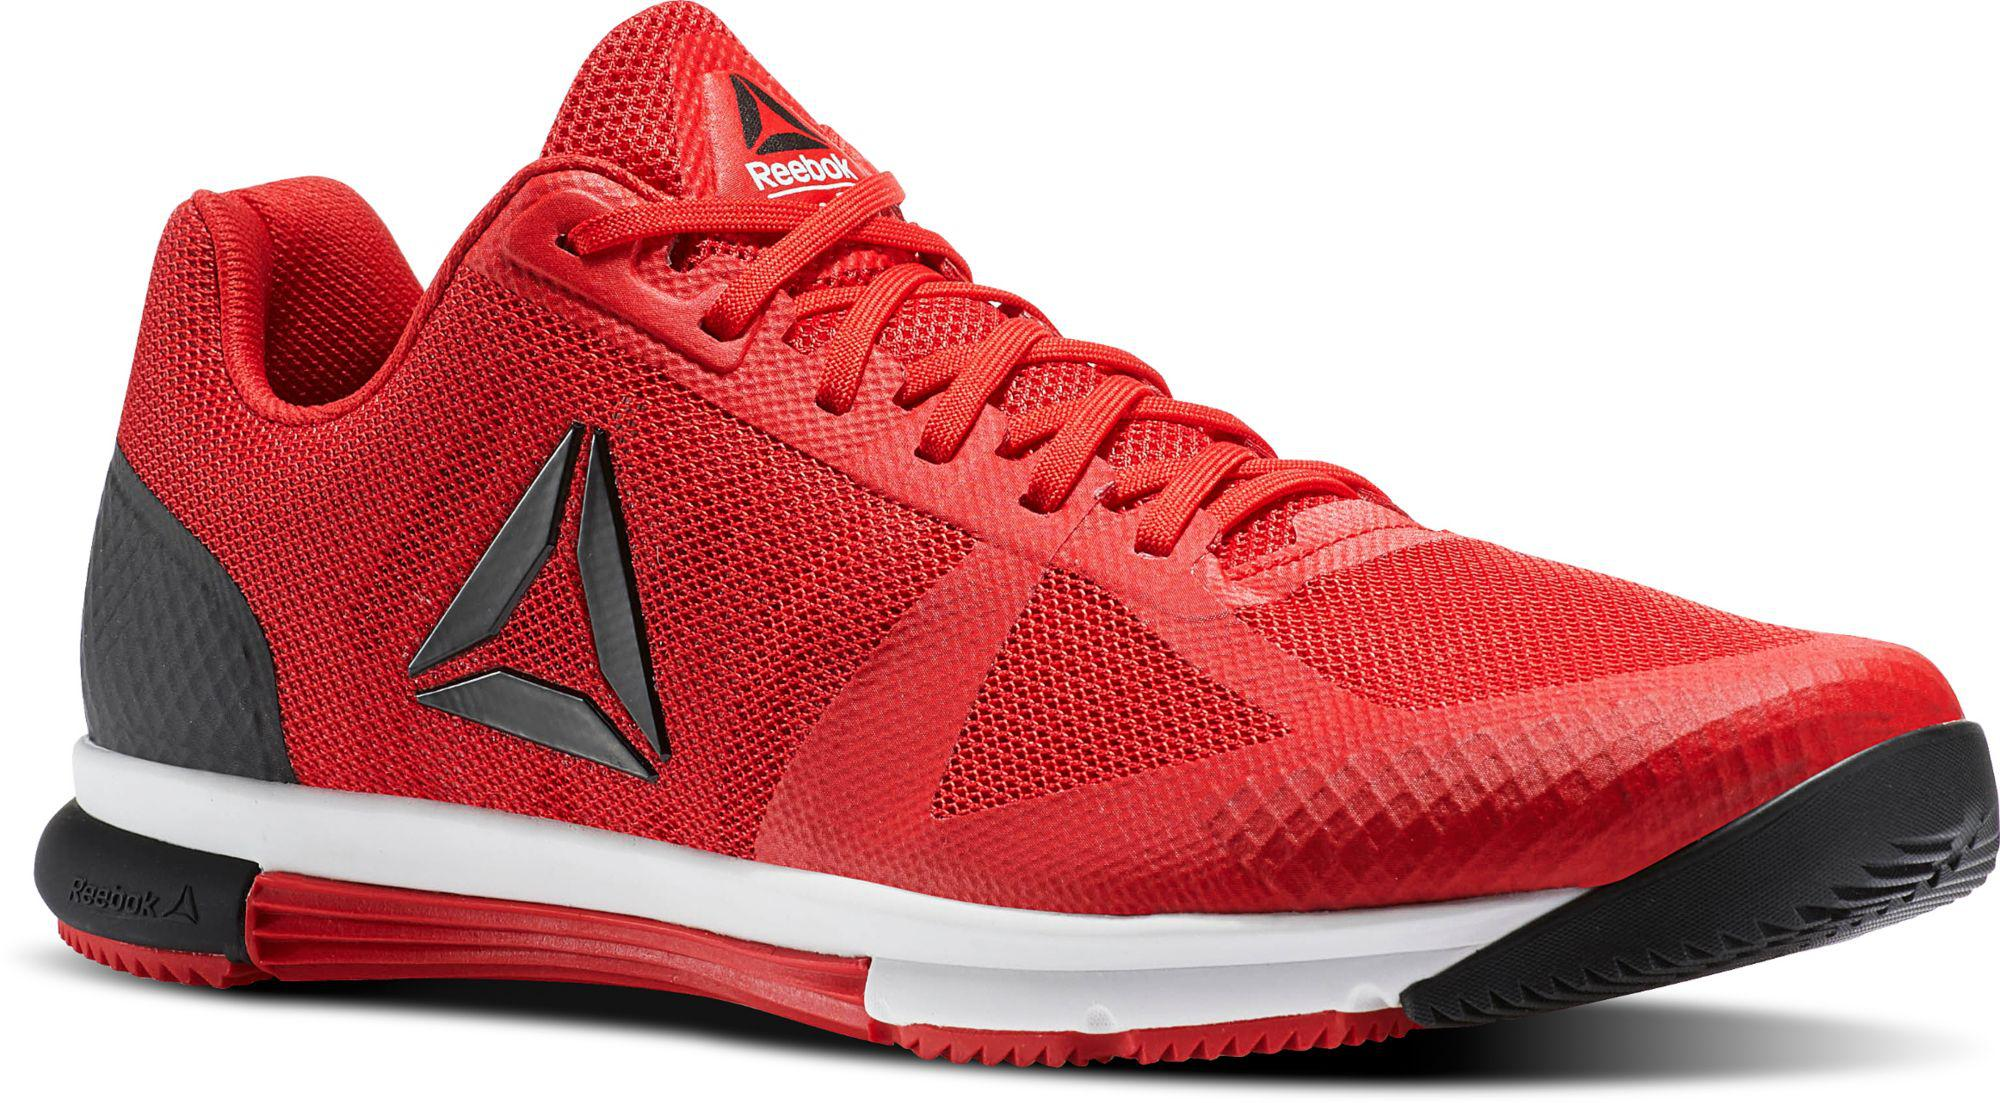 d9337645c811 Lyst - Reebok Crossfit Speed Tr 2.0 Training Shoes in Red for Men